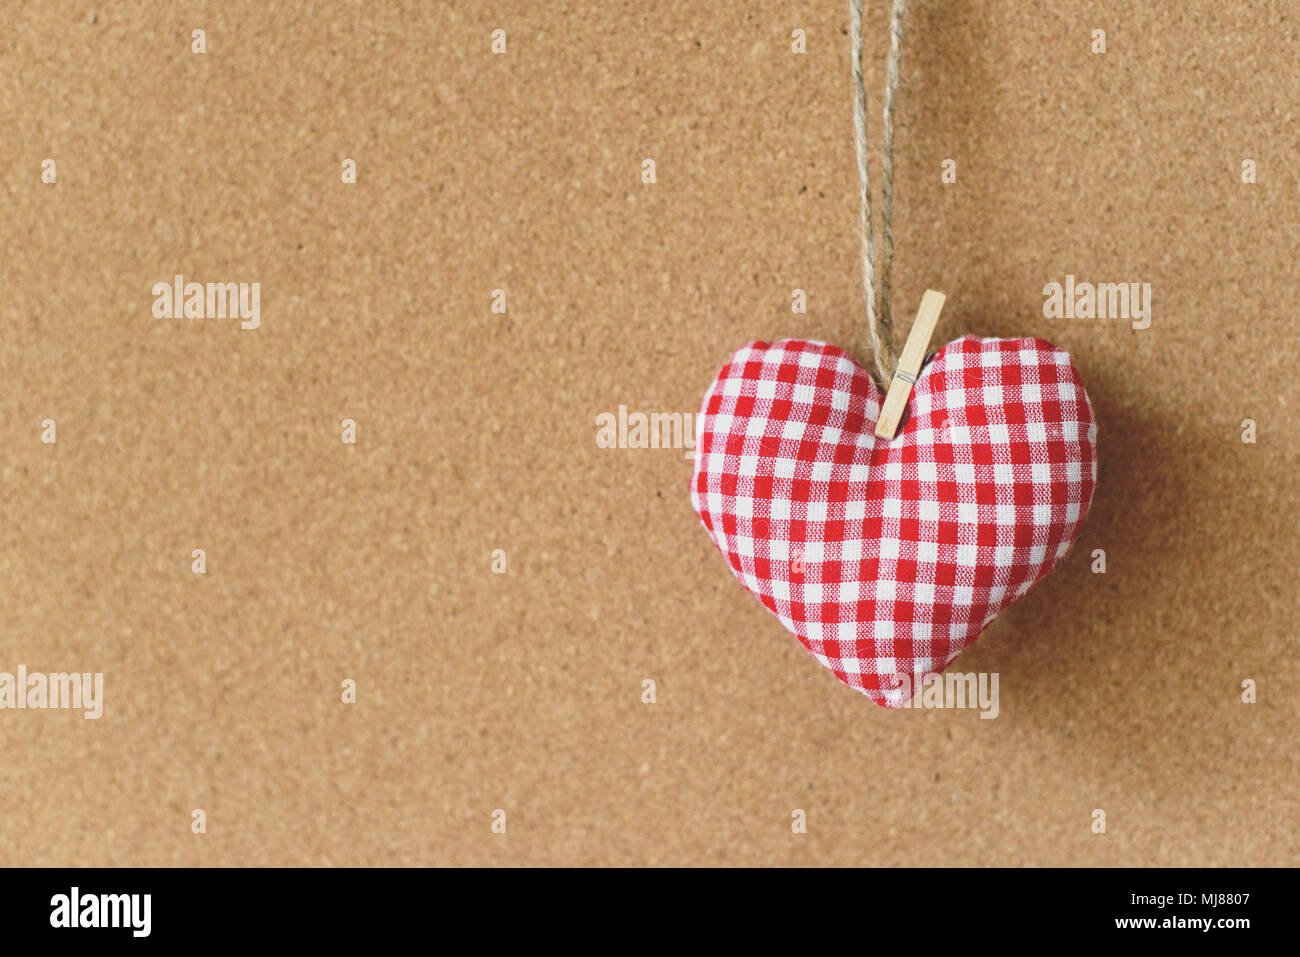 Red Textile Heart Over Brown Craft Recycle Cork Board Background